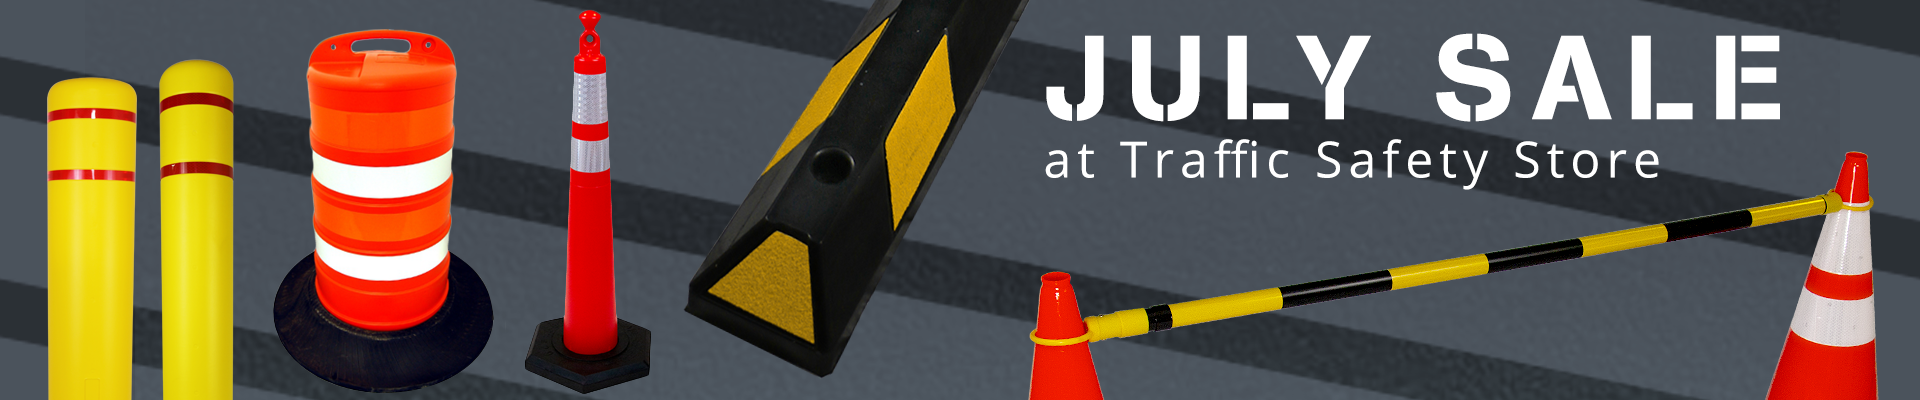 July Sale at the Traffic Safety Store